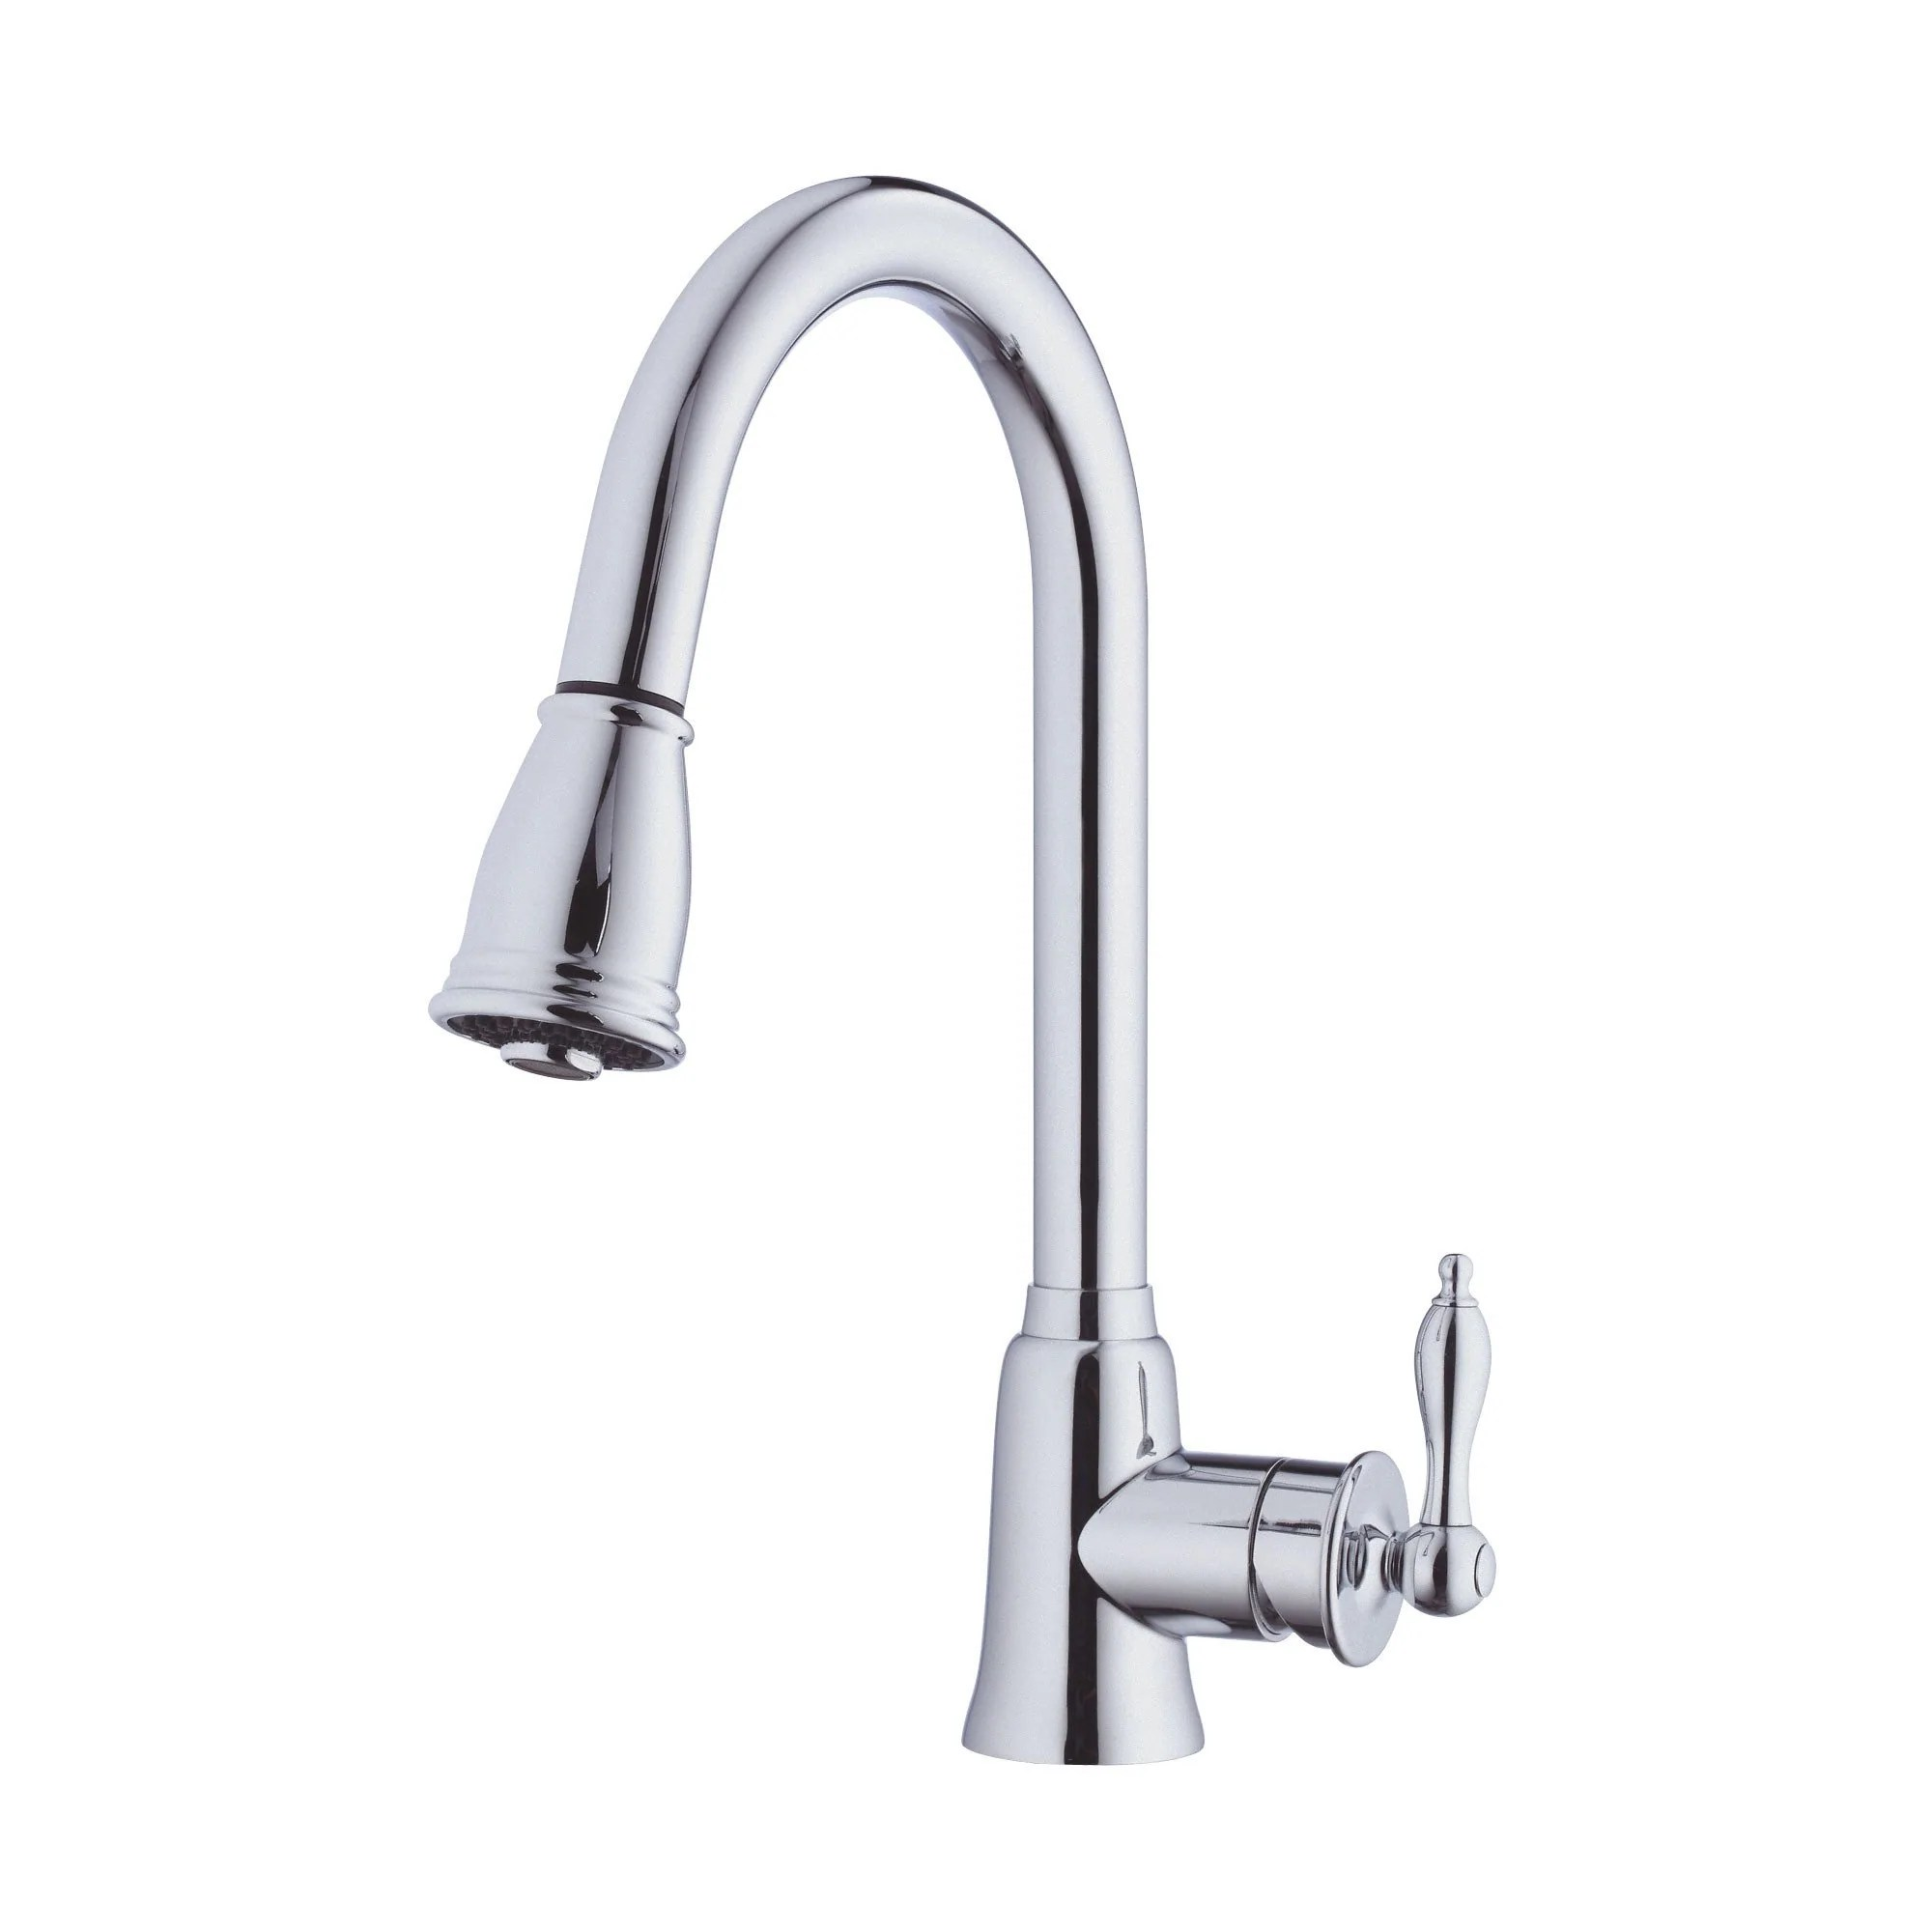 gooseneck kitchen faucet with pull out spray cabinets.com danze prince chrome single handle down